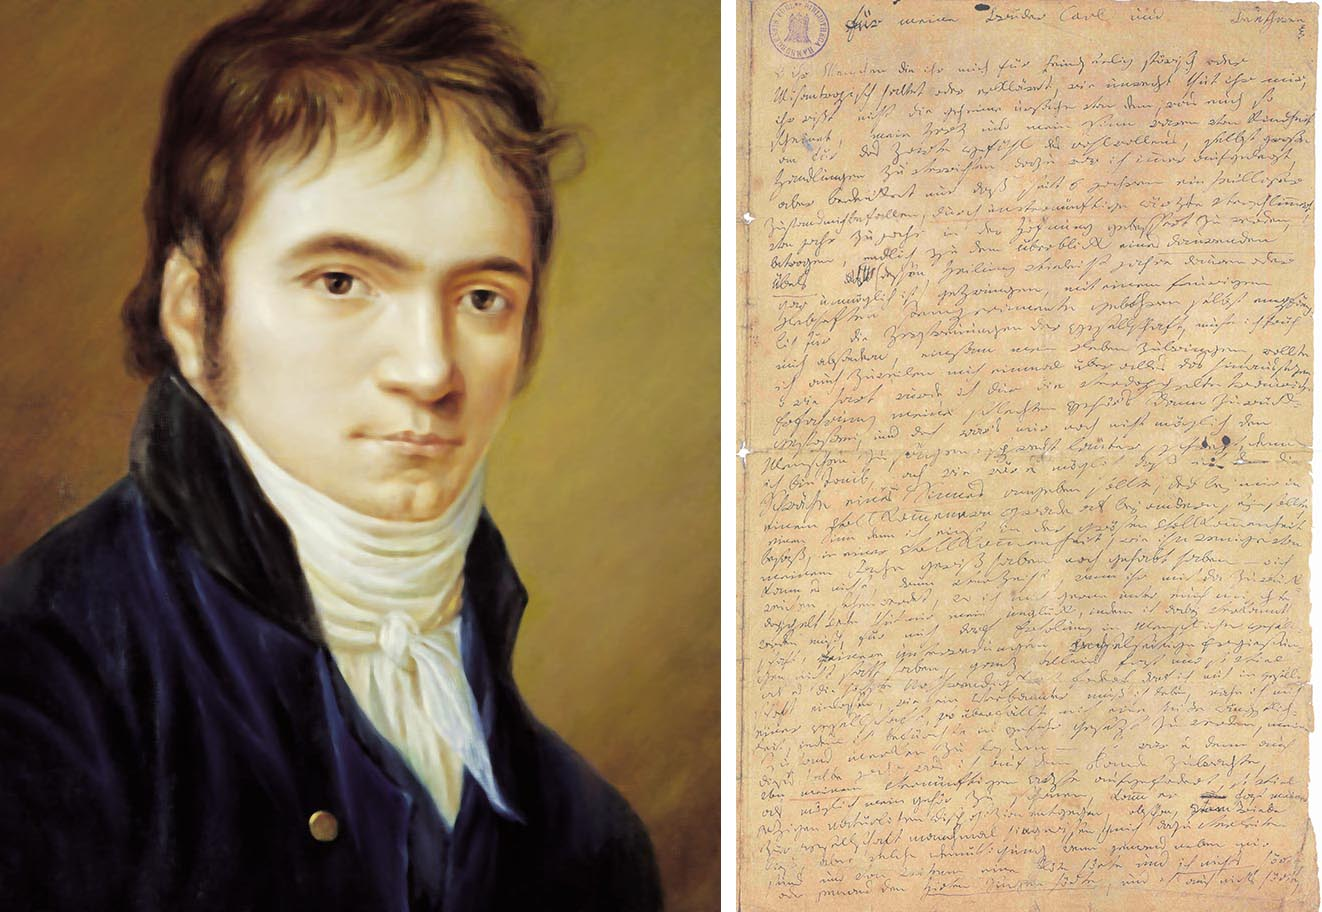 (left) Beethoven in his early thirties. Blue jacket, white scarf, looking directly at the viewer. (right) Letter by Beethoven, in his distinctively messy handwriting.